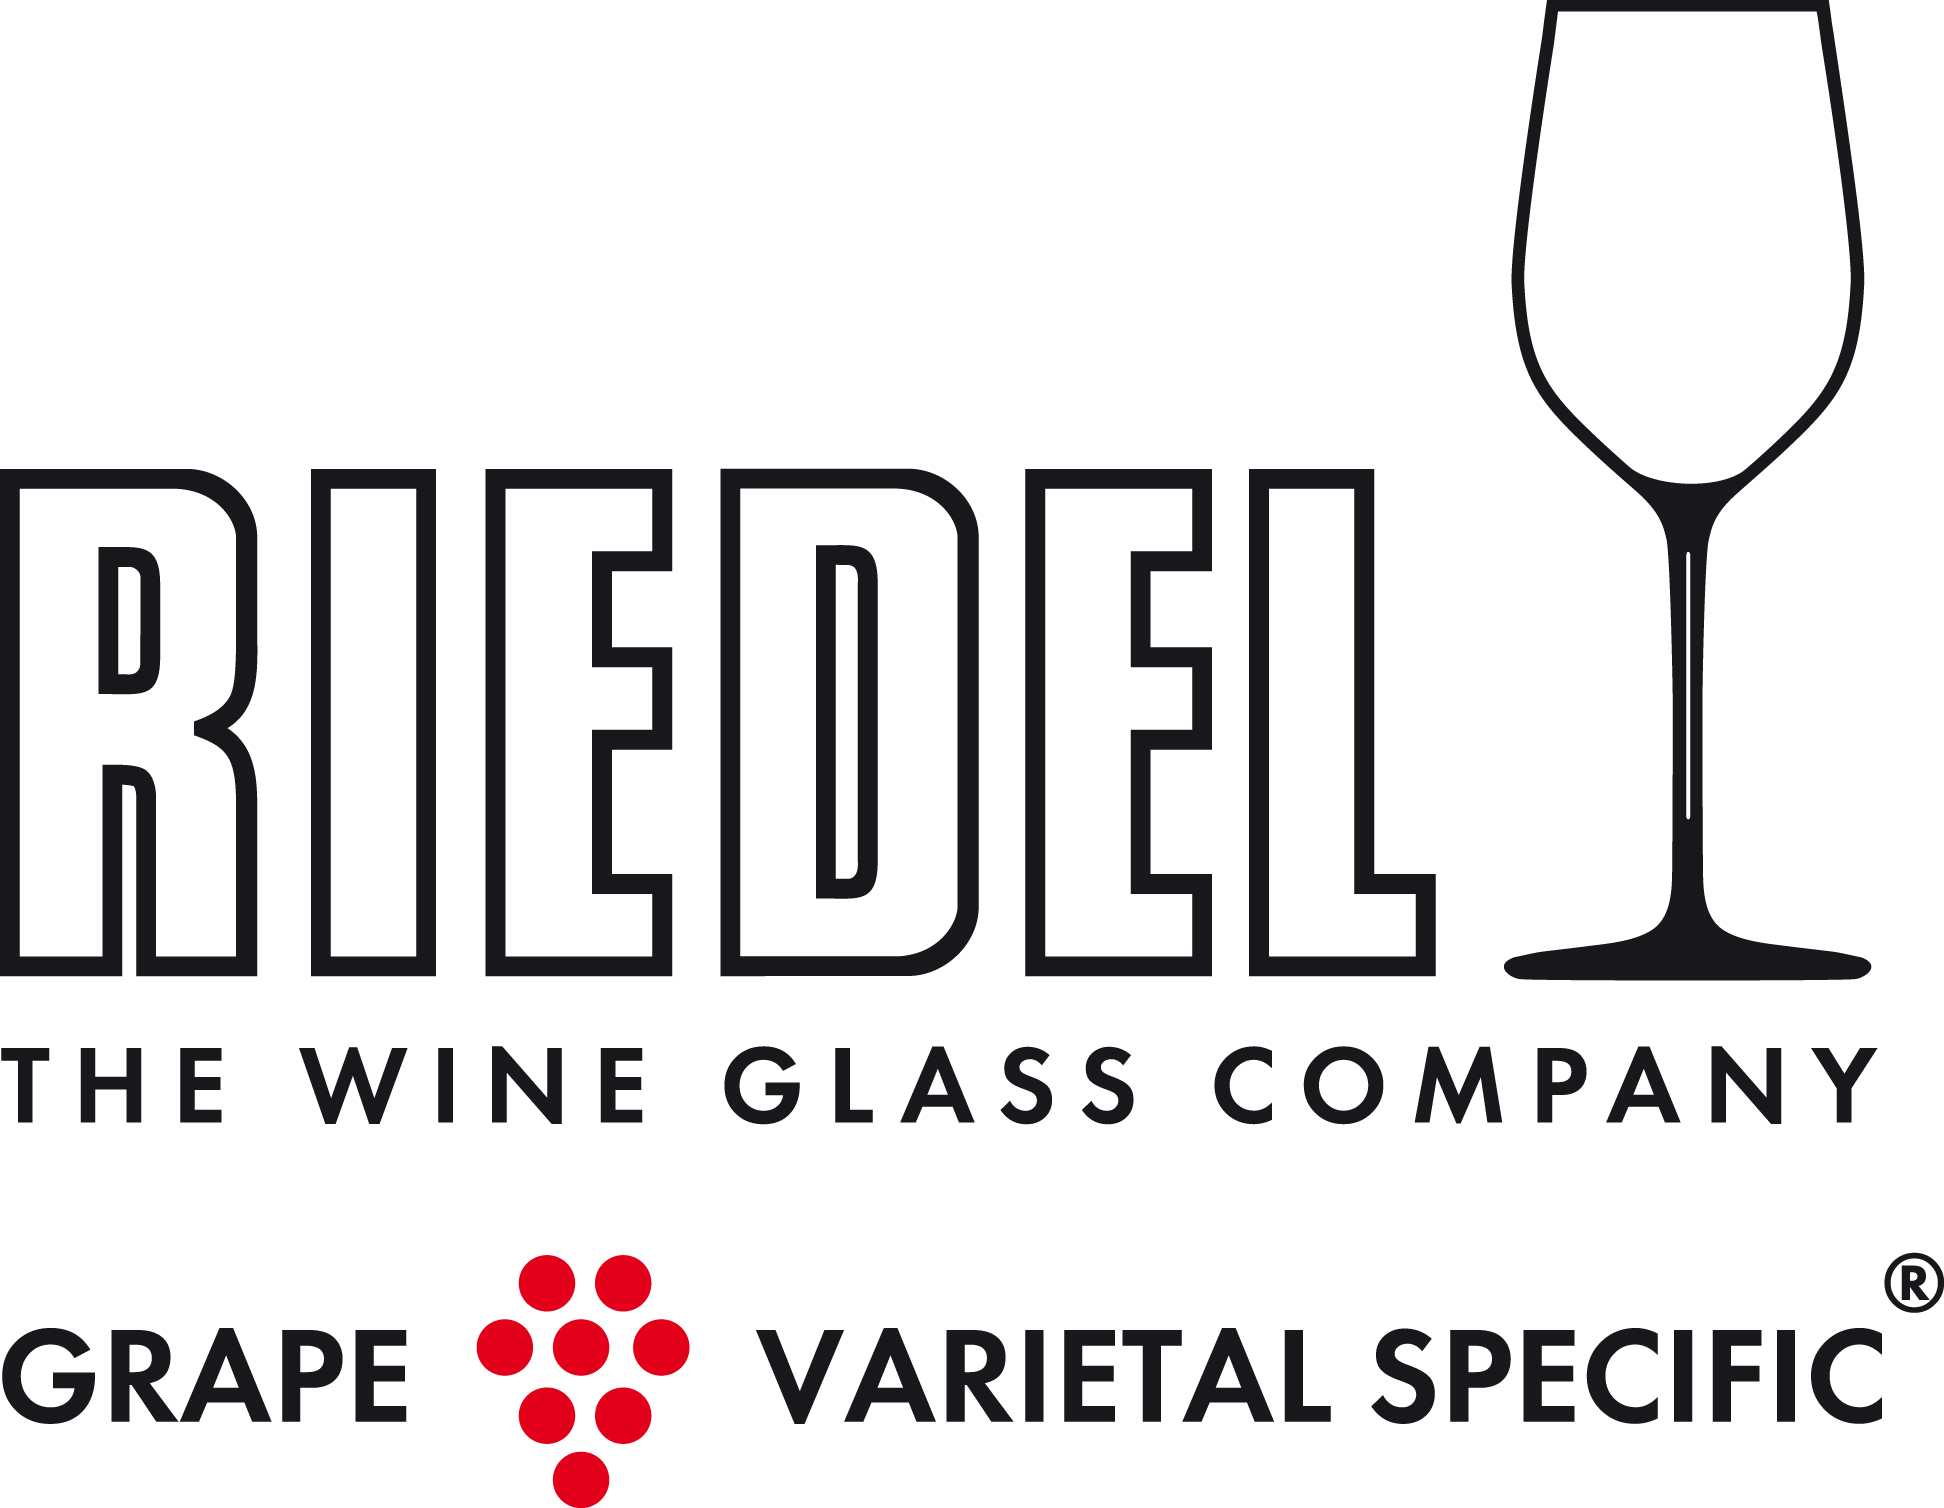 Grape Varietal Specific - Riedel